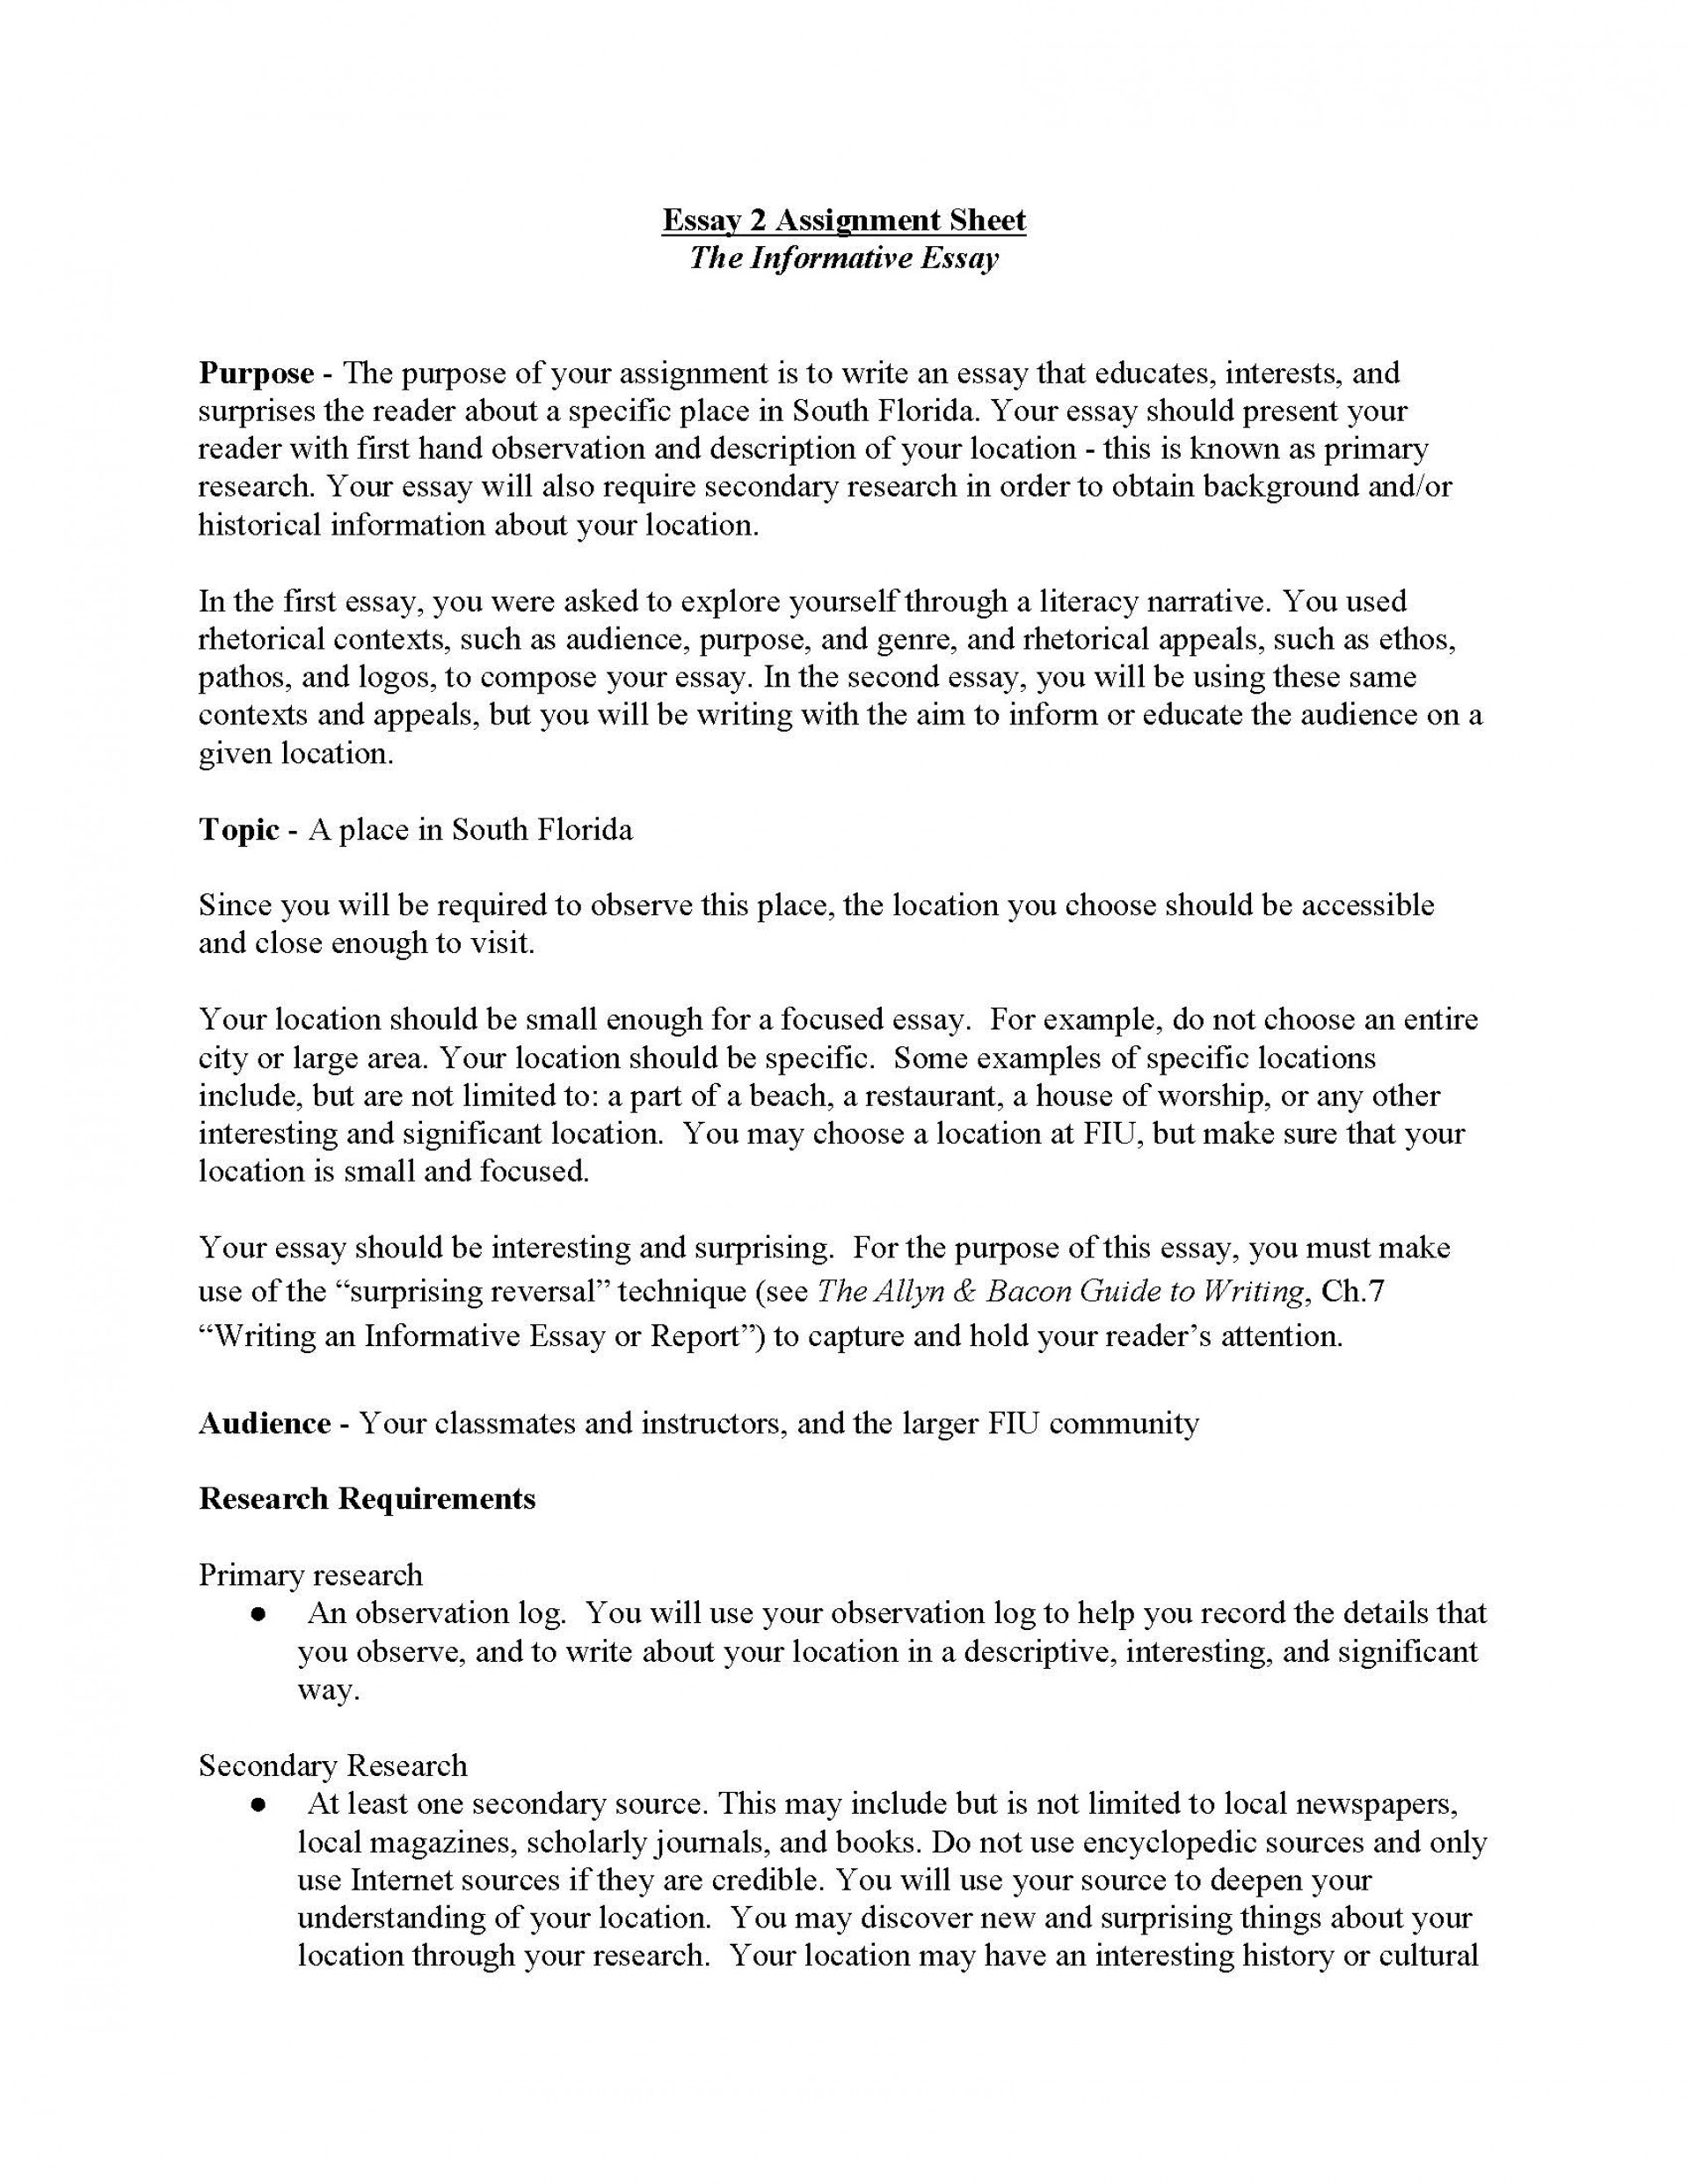 003 Informative Essay Unit Assignment Page 1 Ideas Wondrous Prompts Writing Topics 4th Grade Expository Middle School 1920